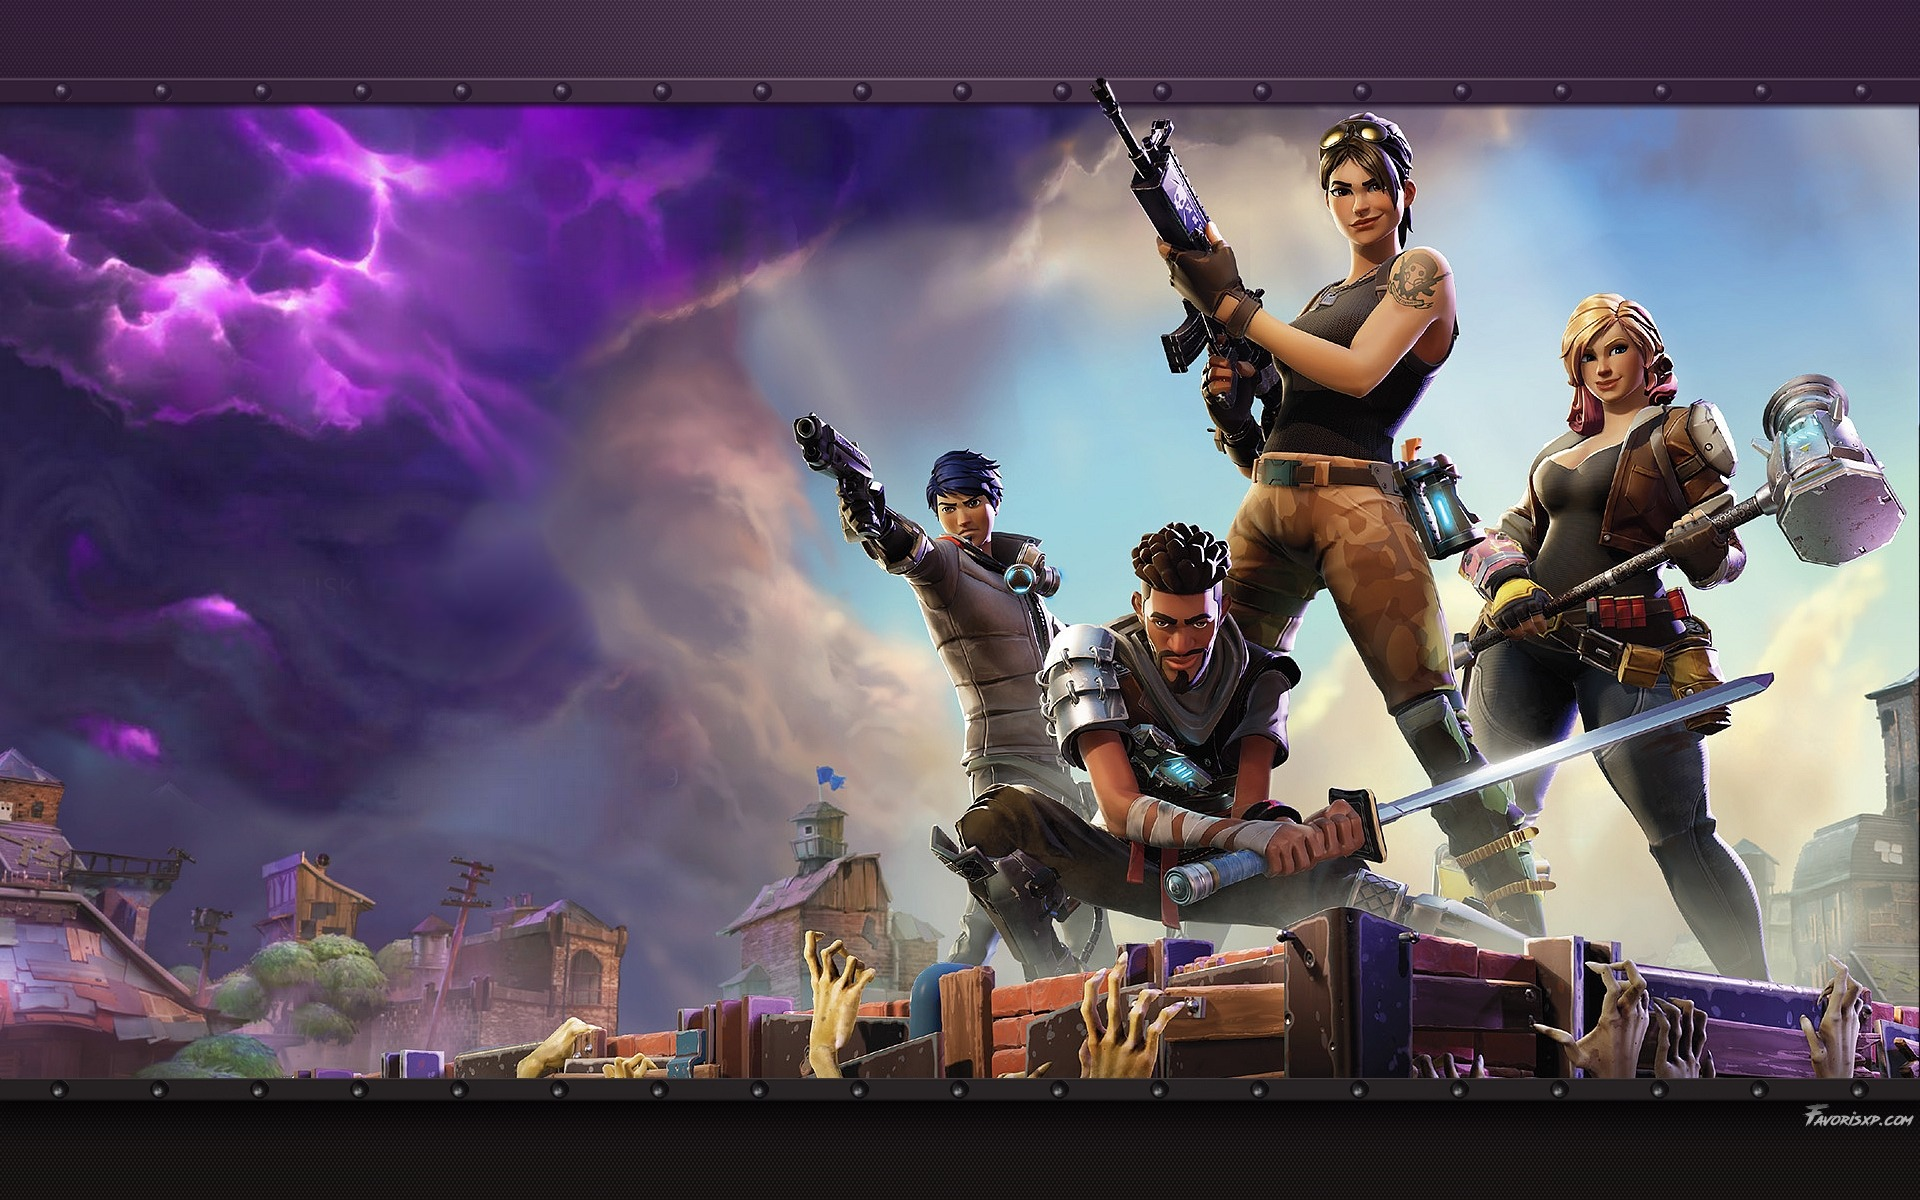 Fortnite fonds d 39 cran hd arri re plans gratuits pour pc for Image hd pour pc